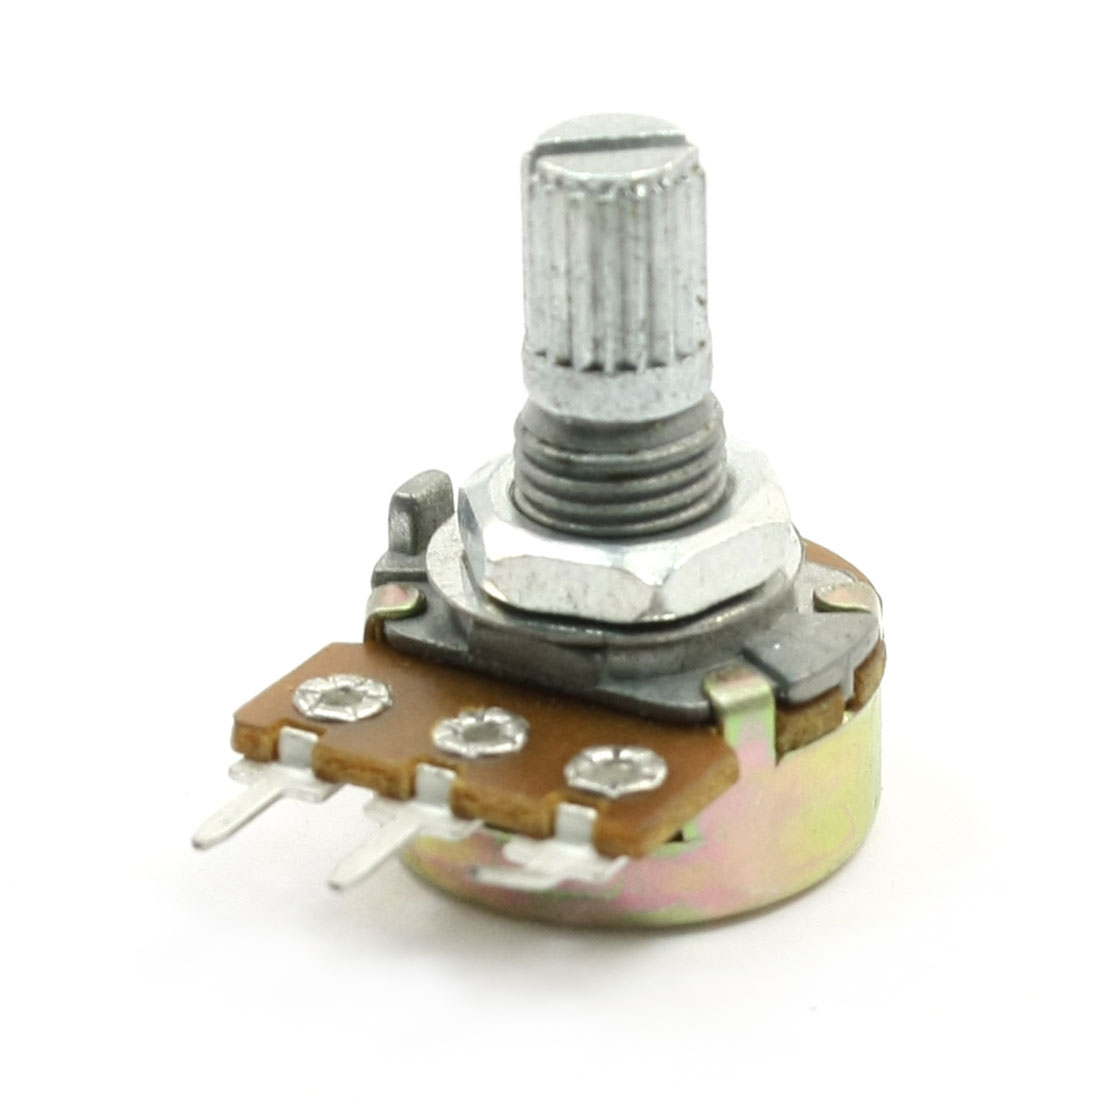 B50K 50K Ohm Adjustment Single Linear Rotary Taper Potentiometer